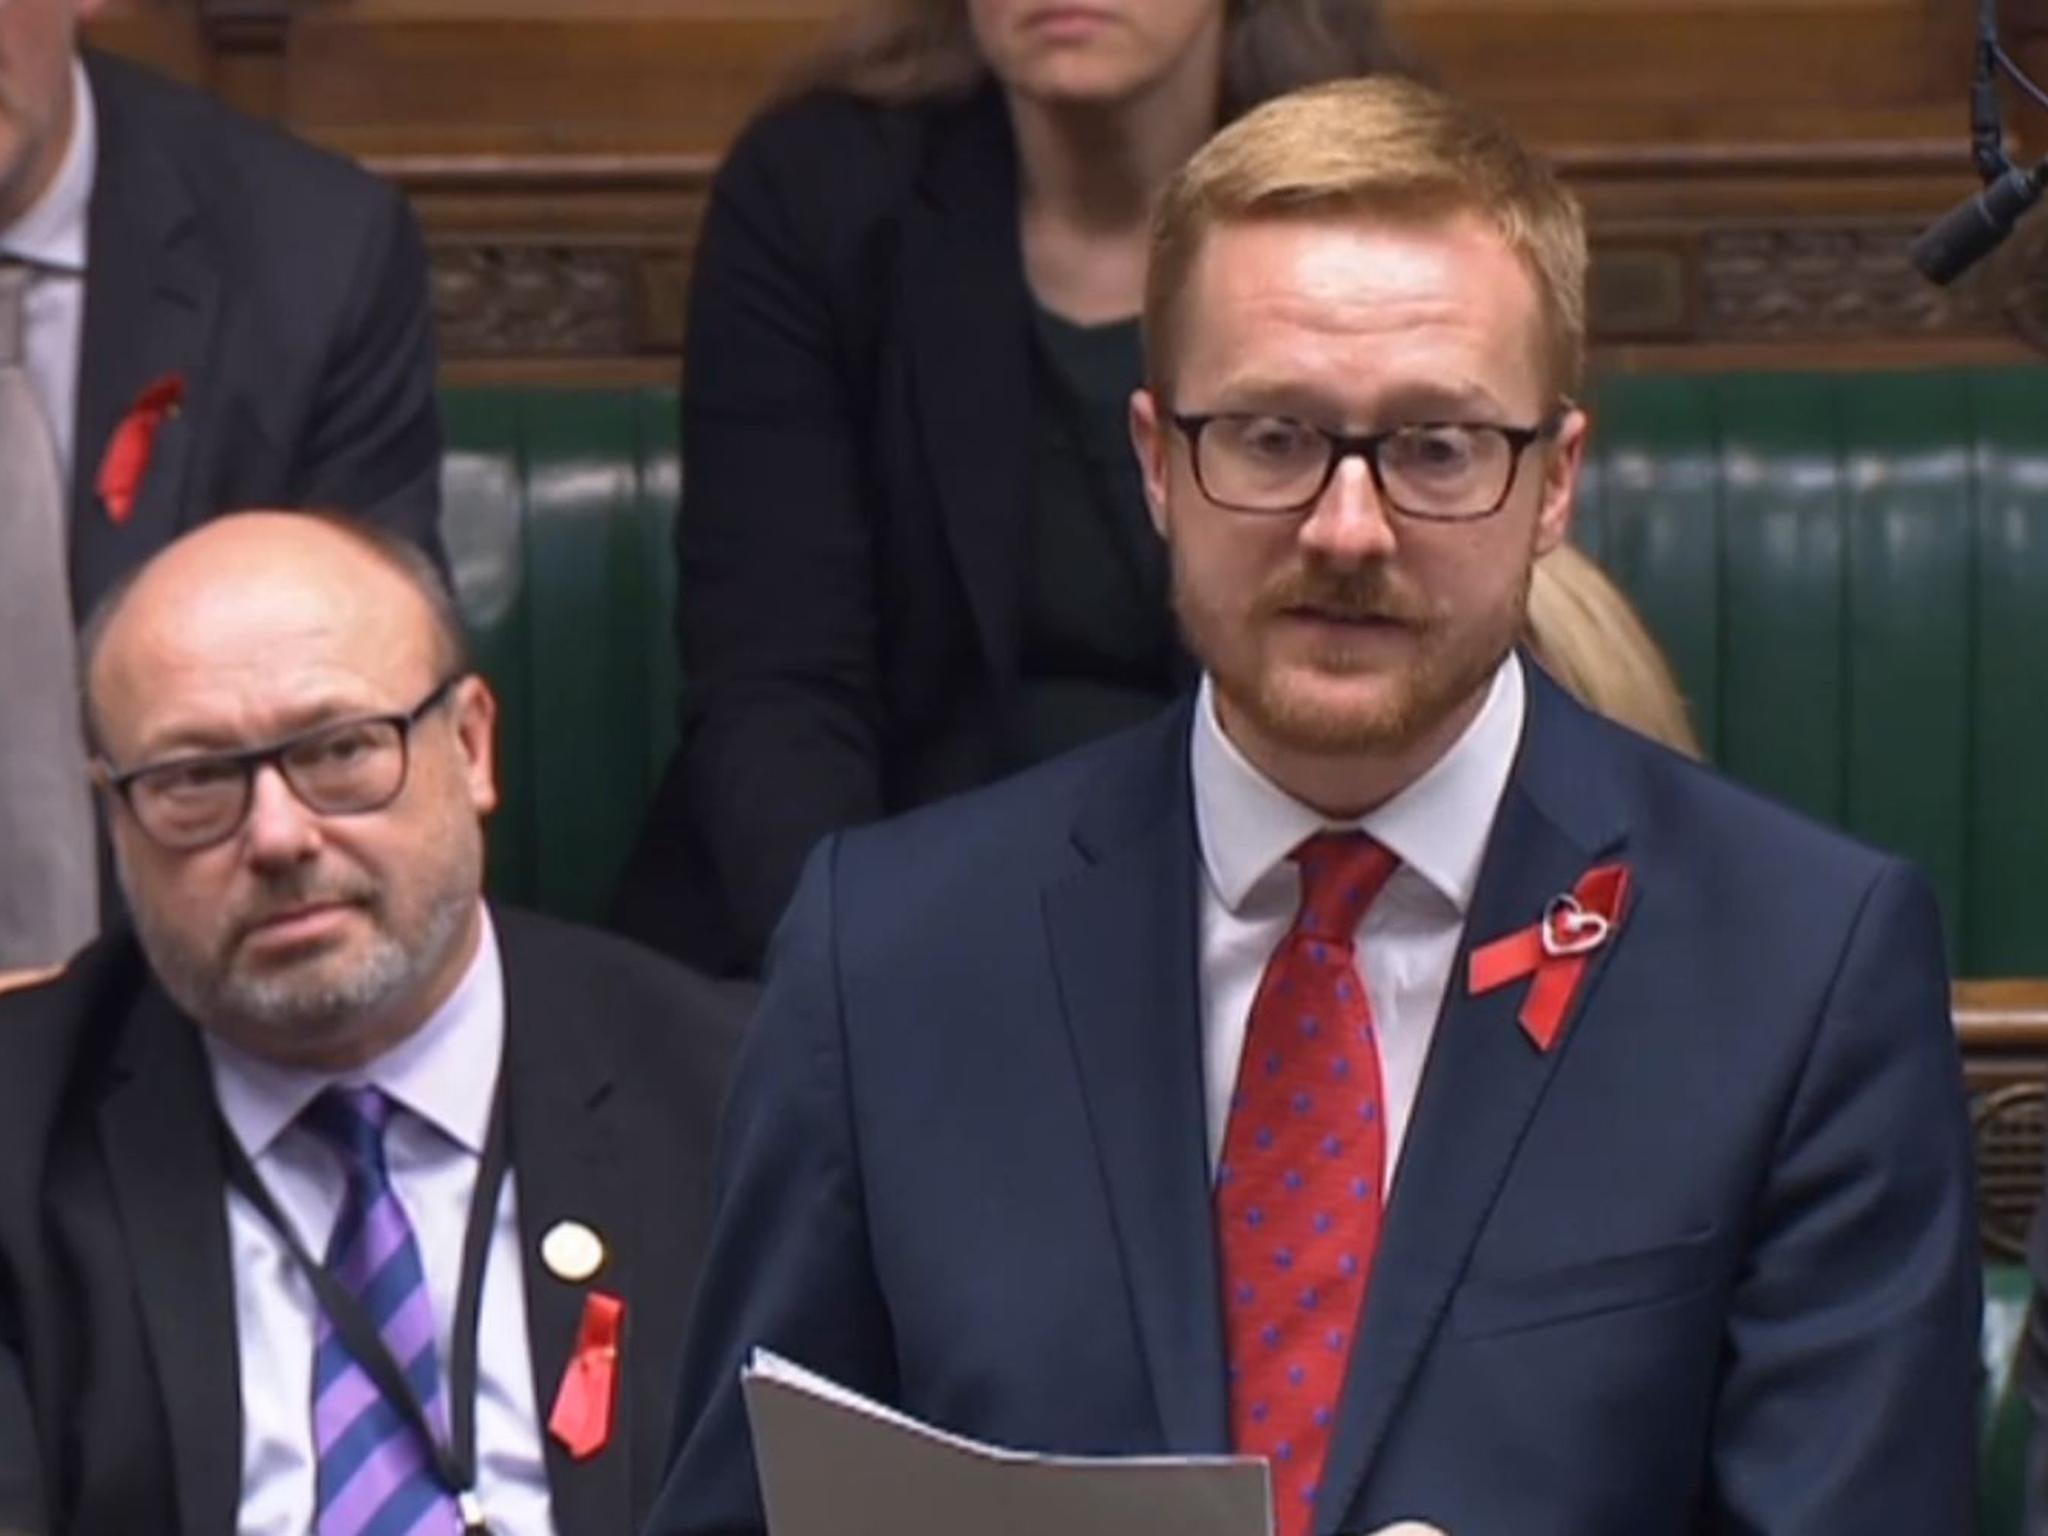 'Why I declared my HIV status in parliament – and what needs to happen next'